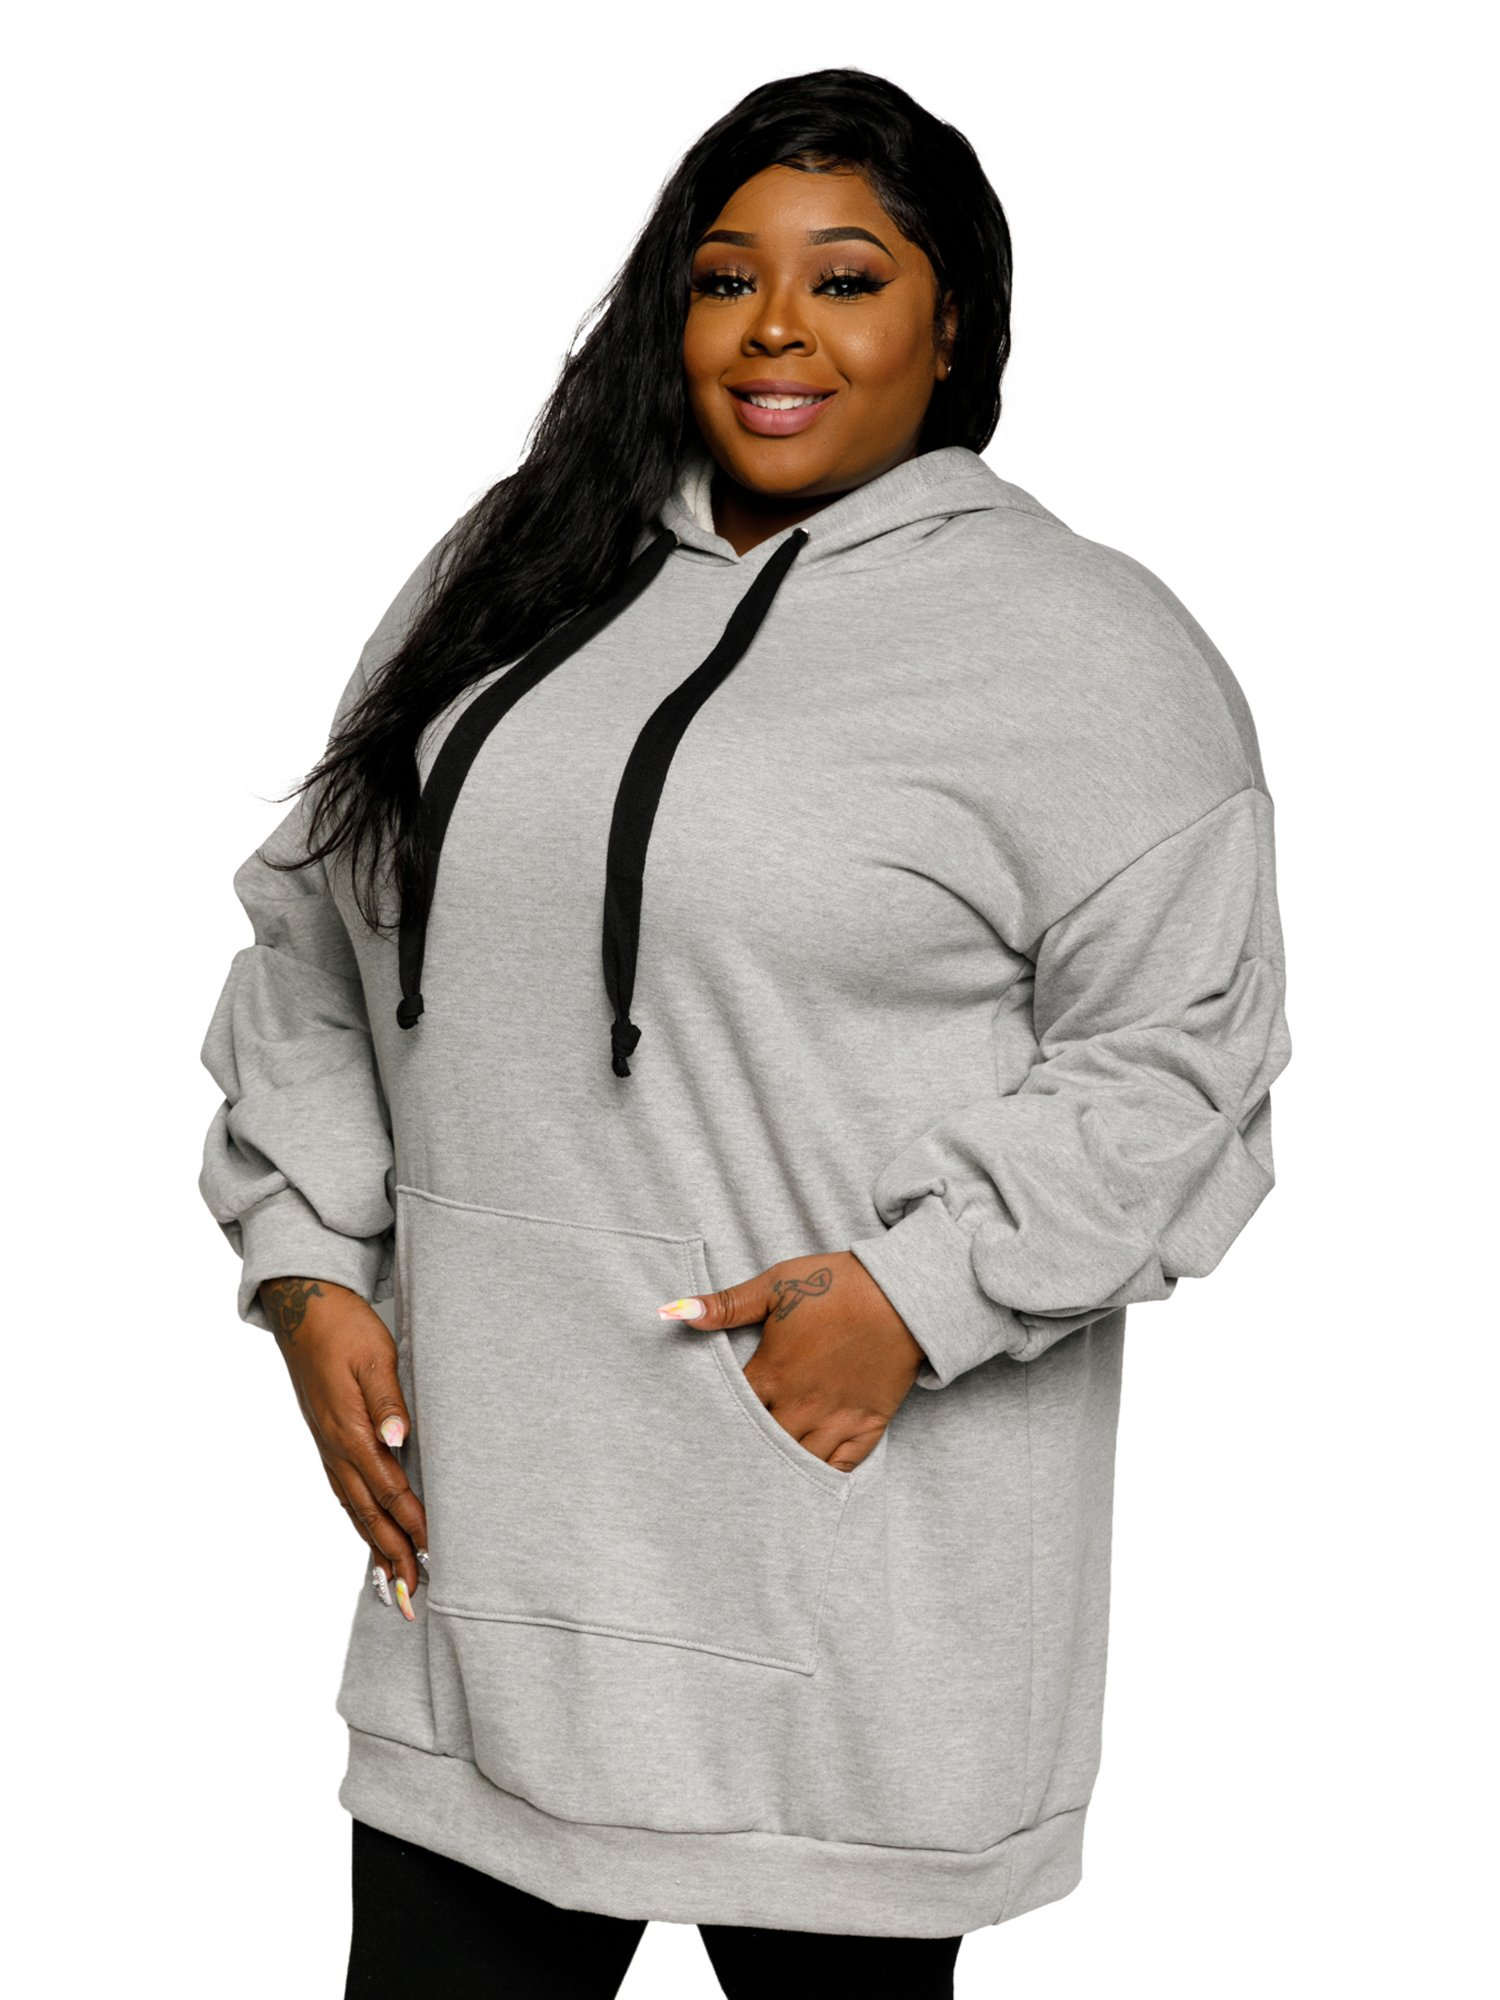 78c78e9d2cd Xehar - Xehar Women s Plus Size Casual Oversized Ruched Hoodie Sweater  Dress - Walmart.com